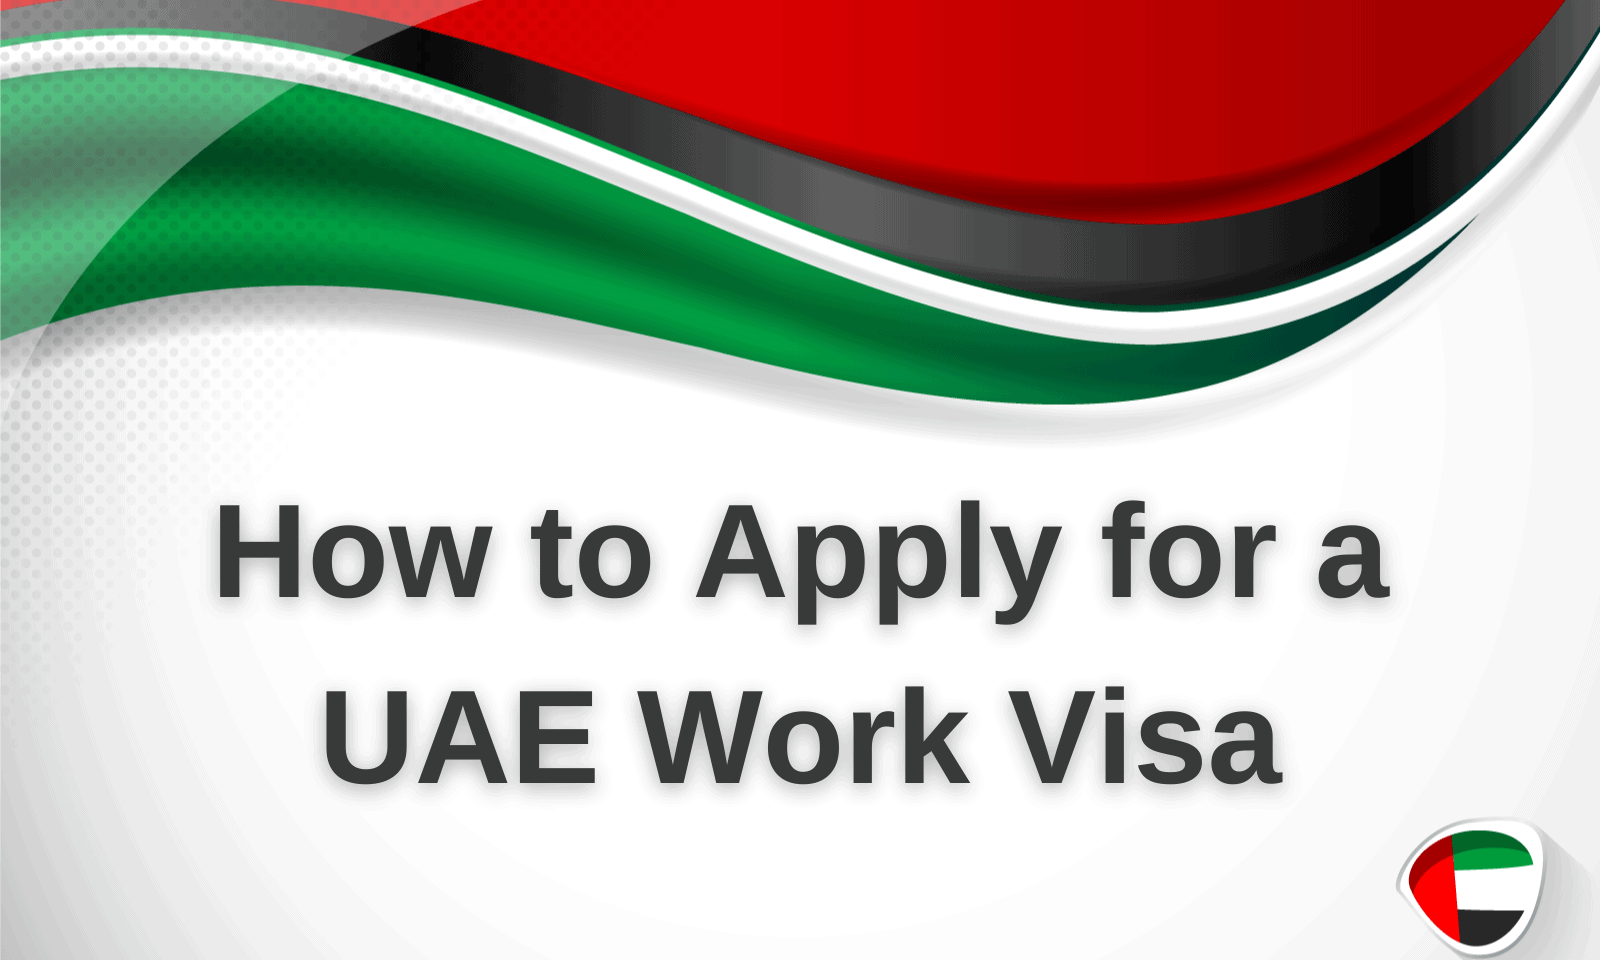 How to Apply for a UAE Work Visa